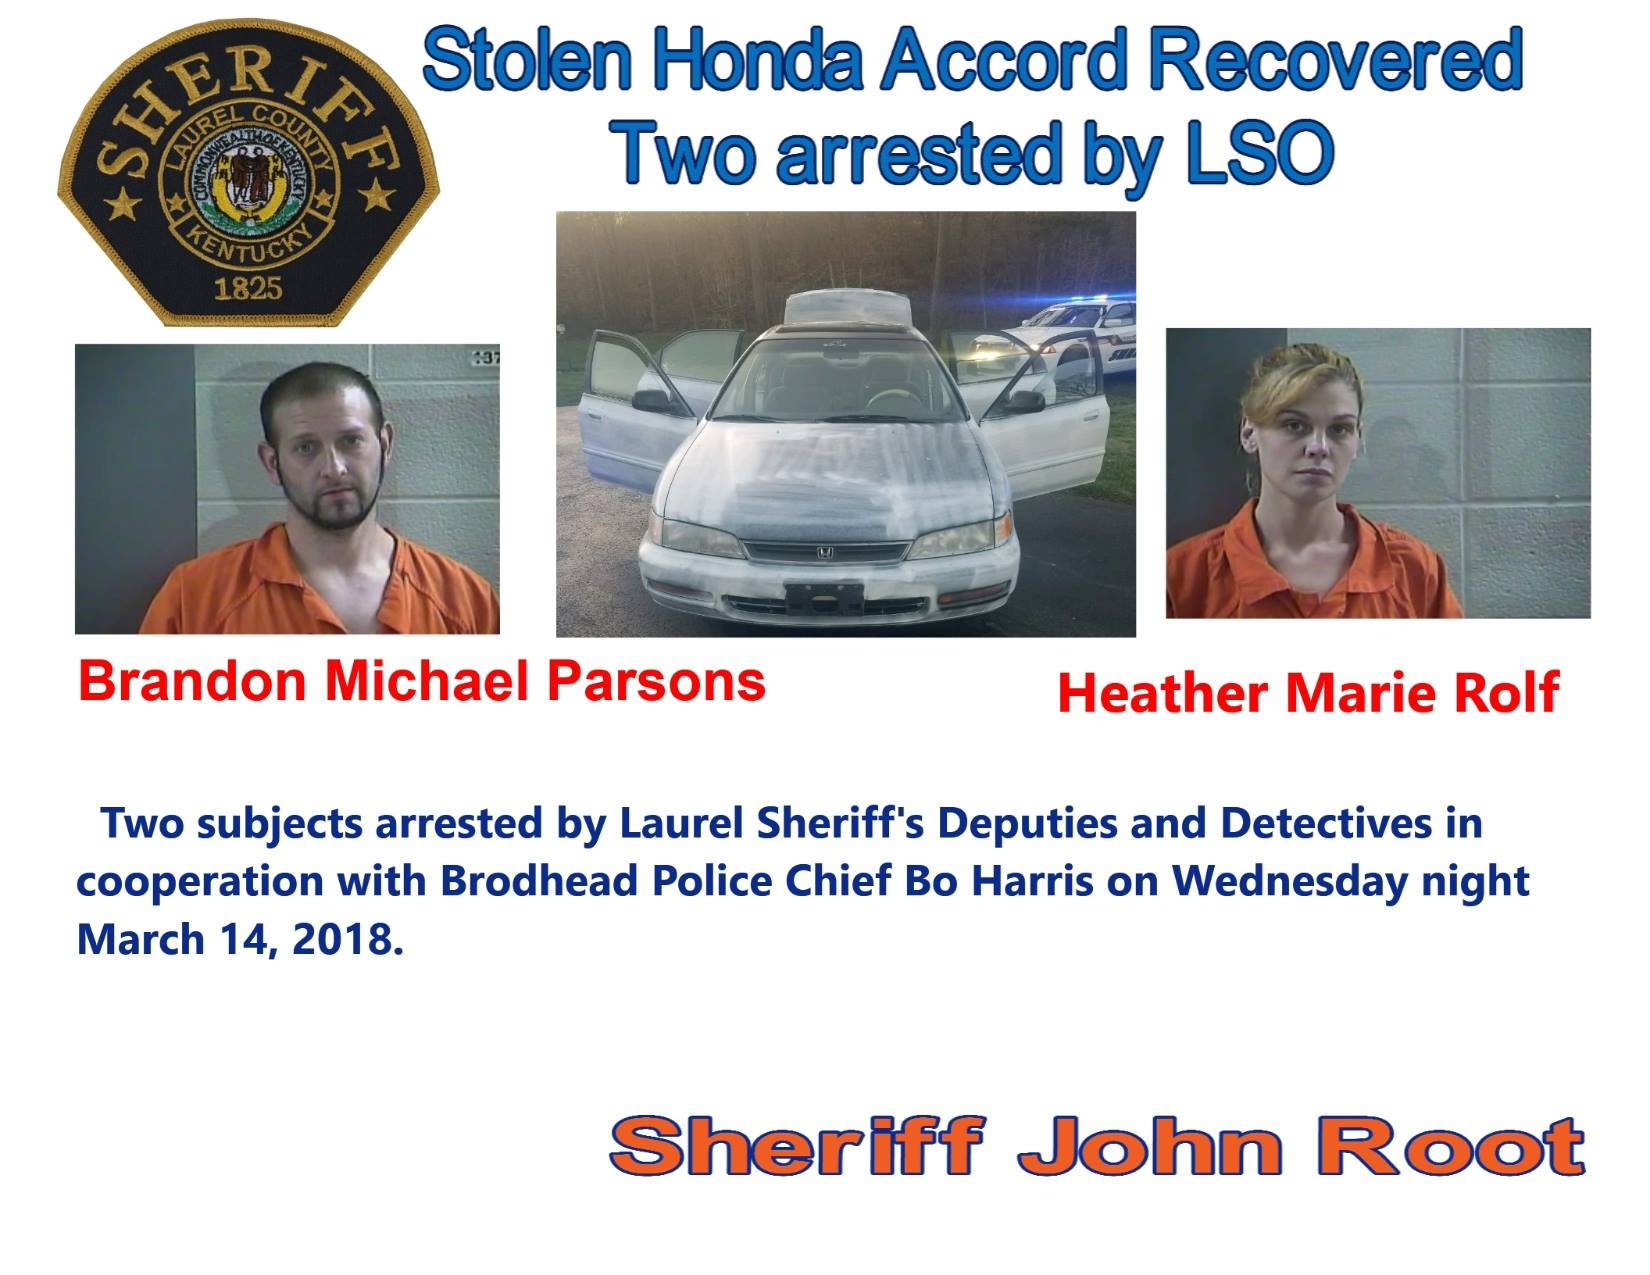 Laurel County And Brodhead Police Team Up To Recover Stolen Car And Arrest Two